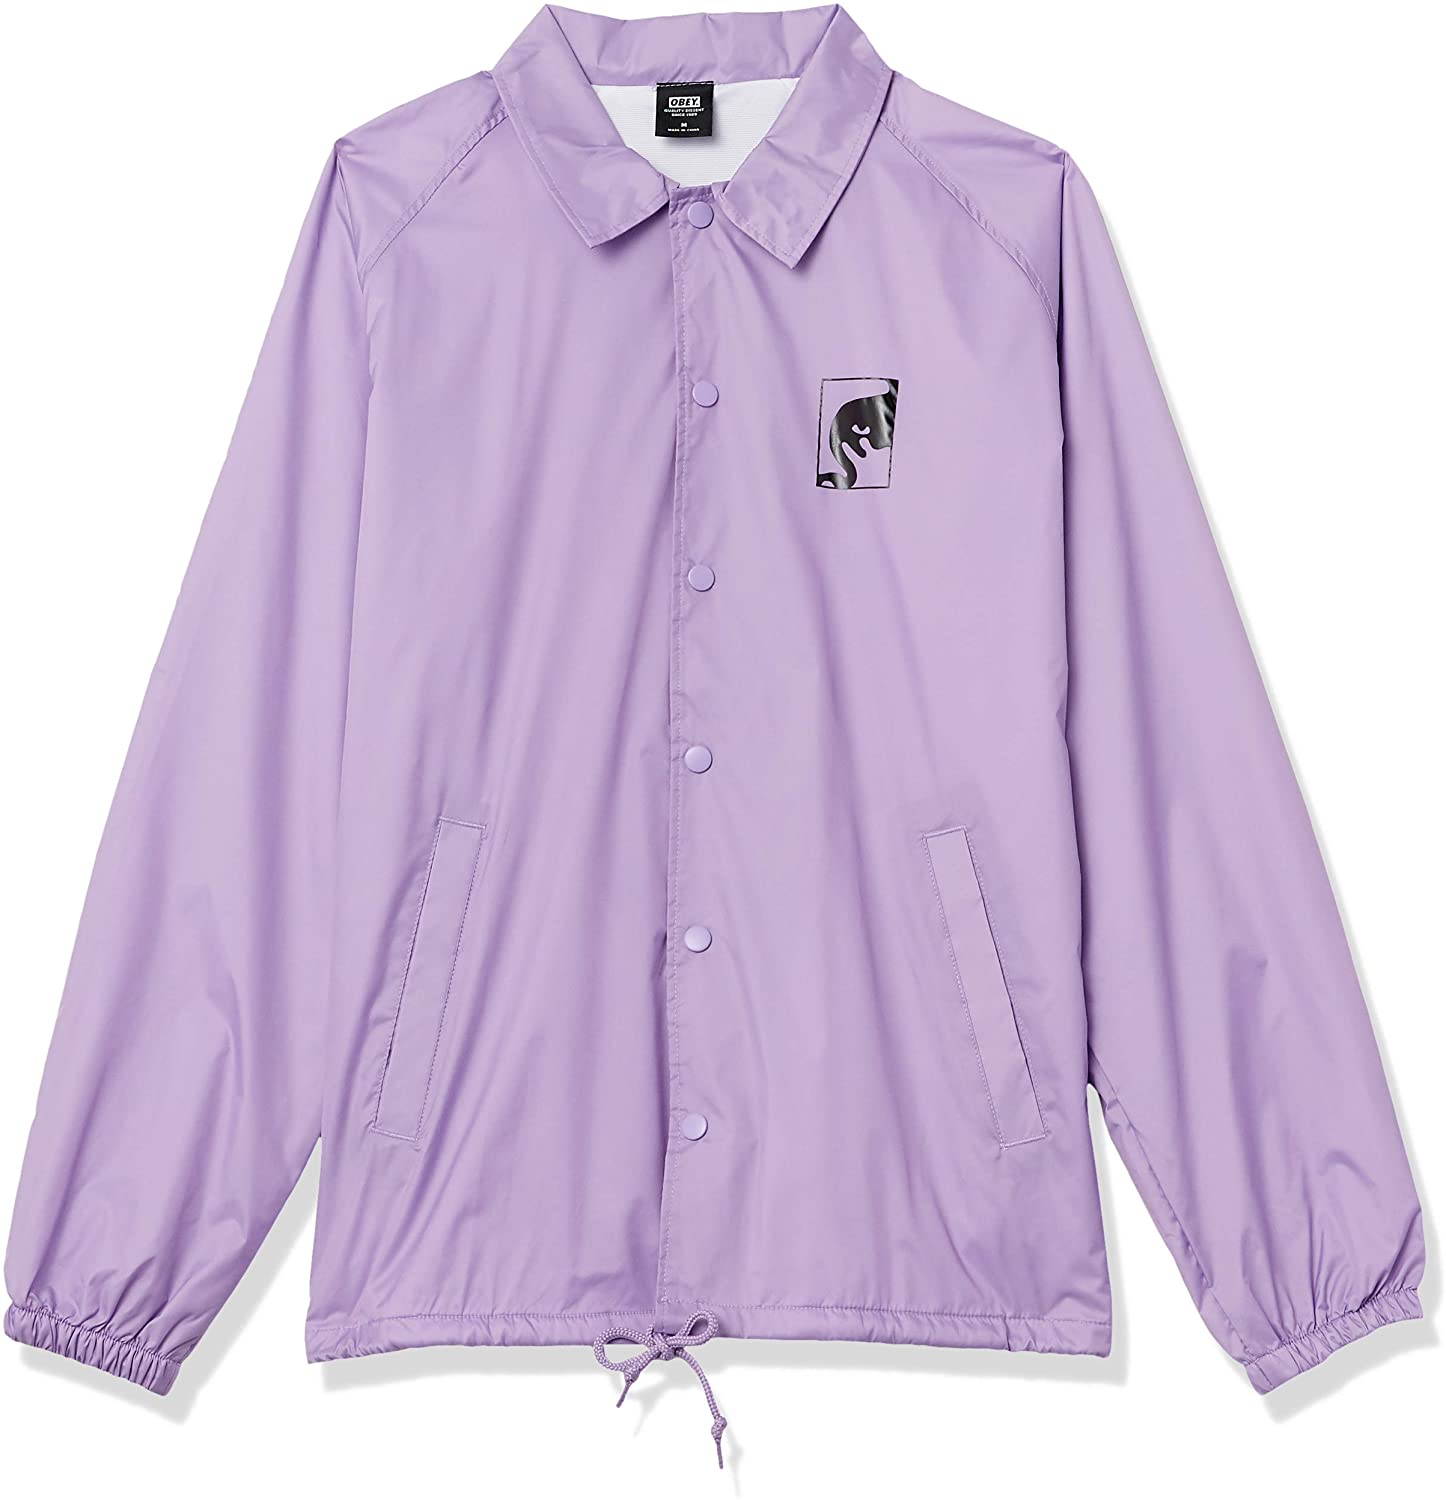 Obey Men's Wake Up Consume Repeat Classic Coaches Jacket, Lavender, Medium